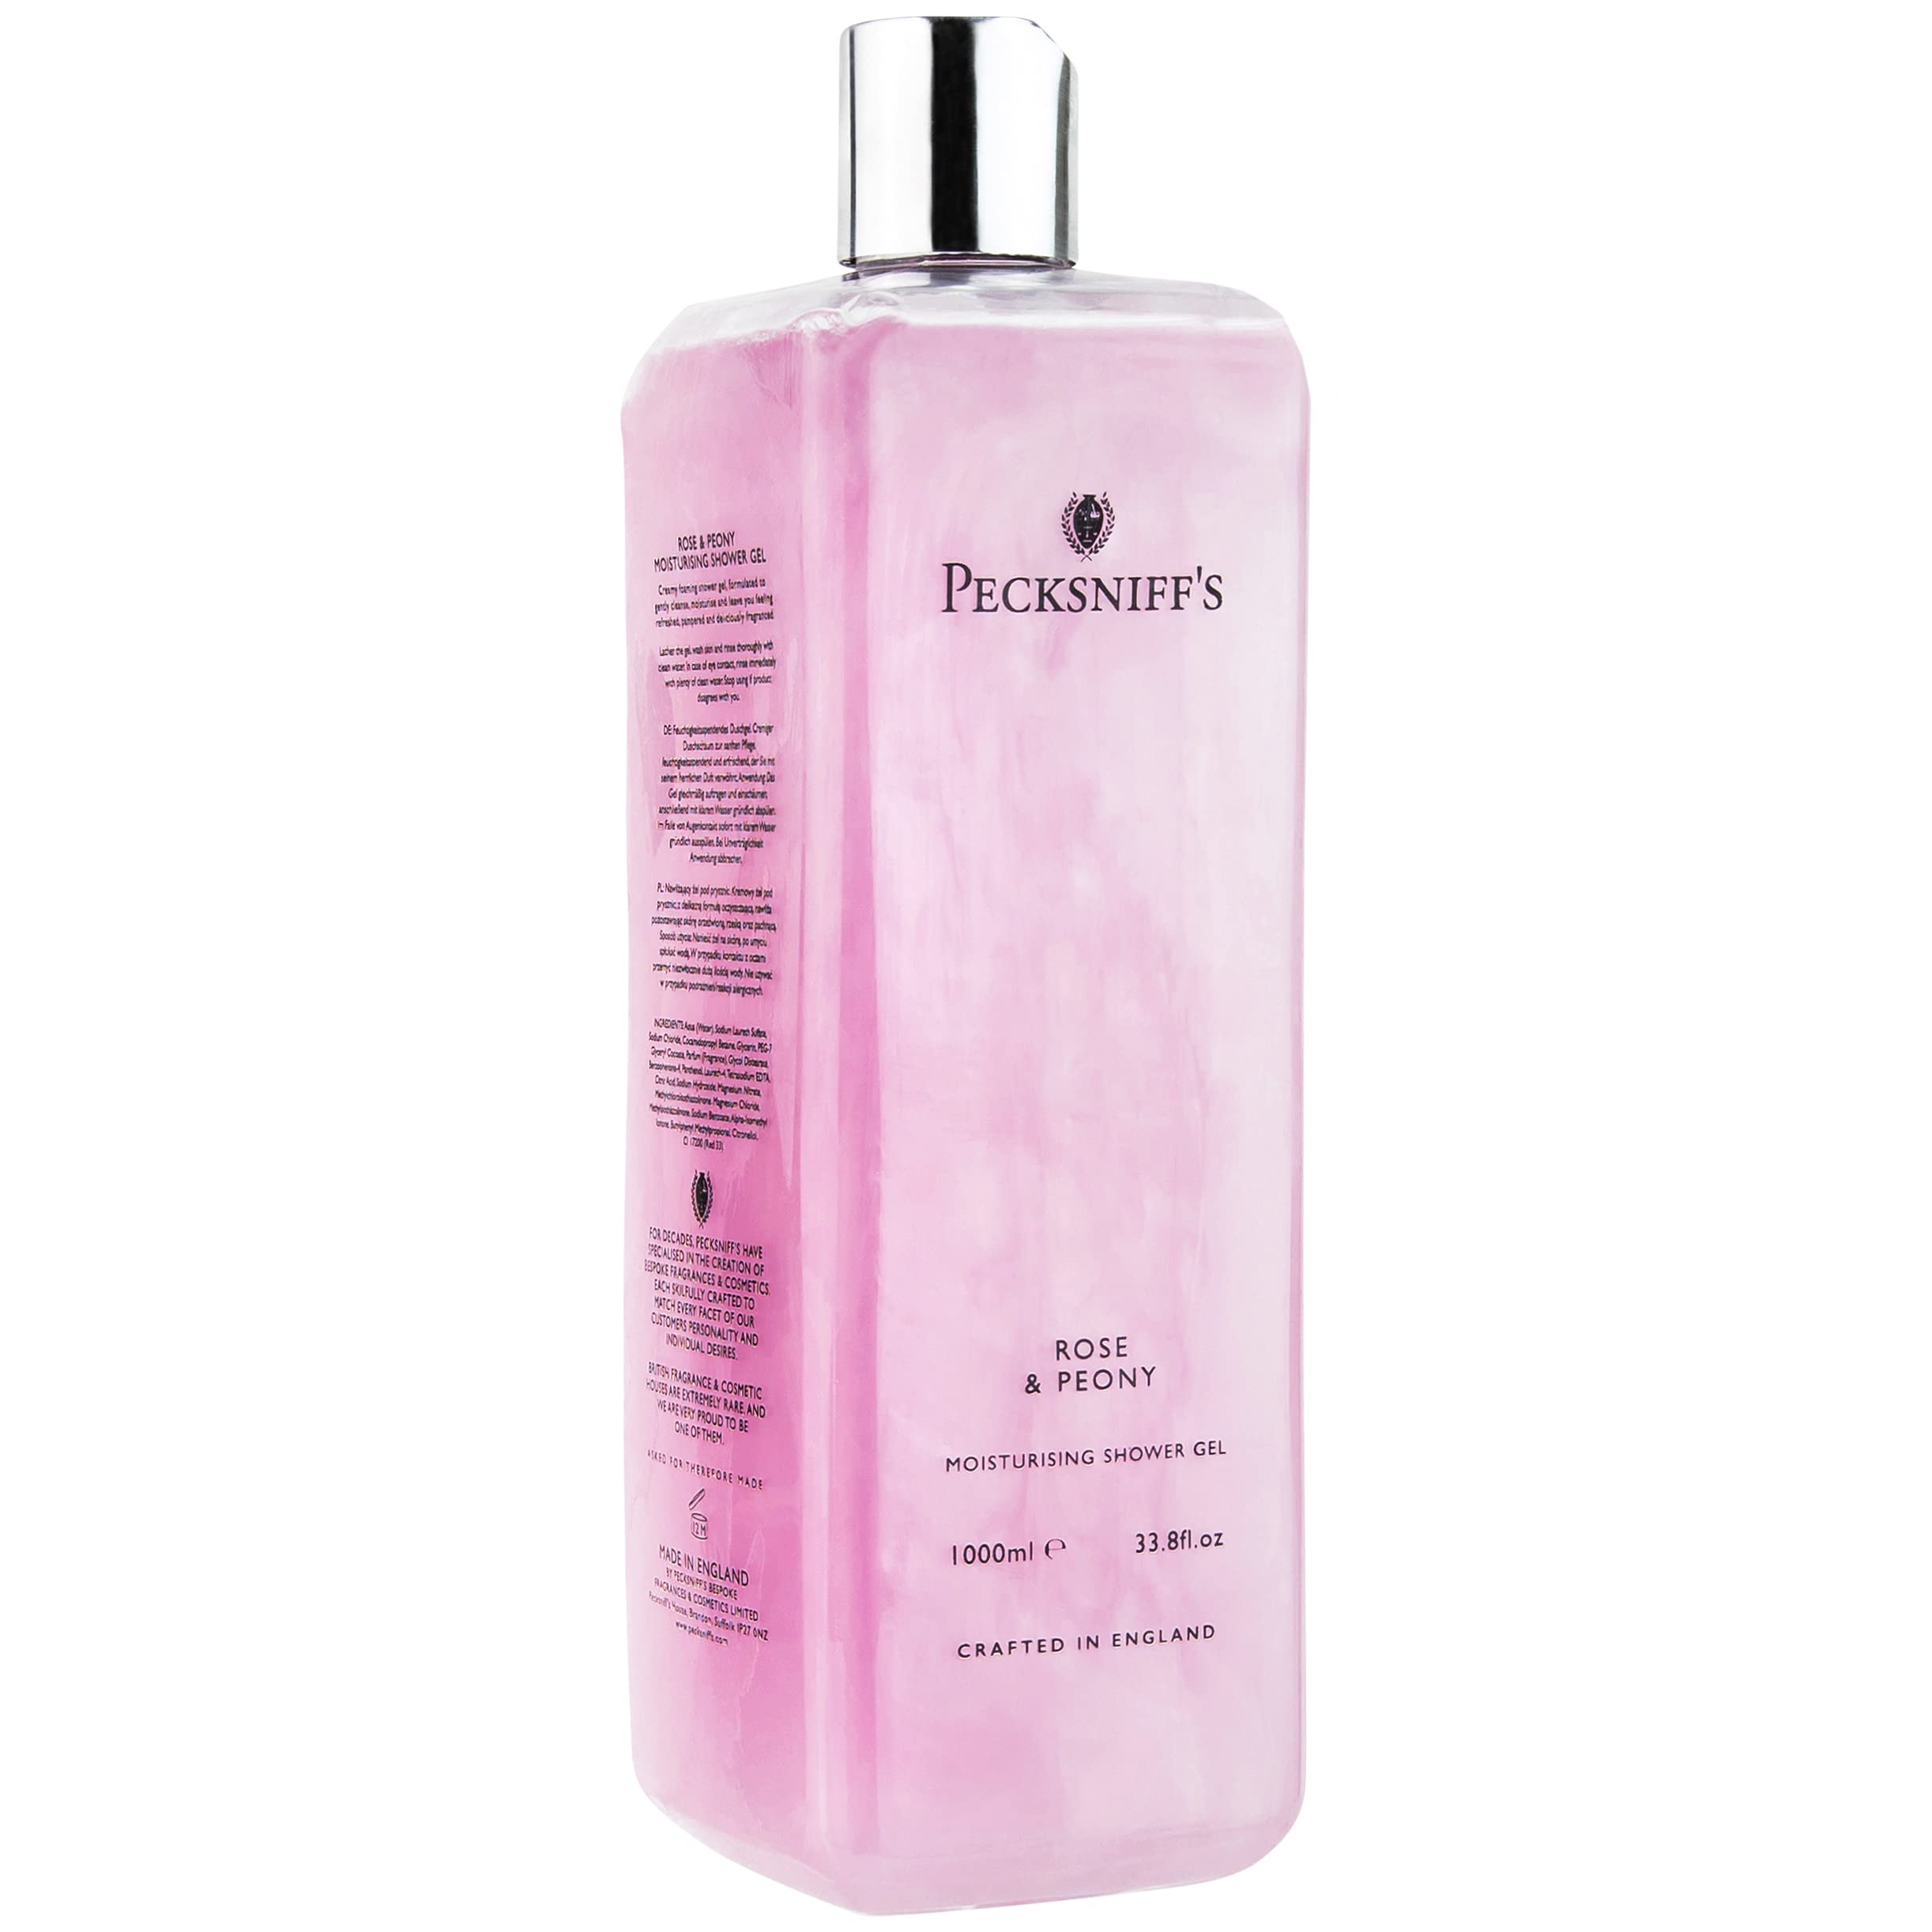 33.8 Fluid Oz Shower Gel (Rose & Peony) - Gentle Cleanser for Sensitive Skin - Moisturizing & Hydrating - All Natural Cruelty Free Body Wash - Vitamin B Enriched Body Wash - Pecksniff's